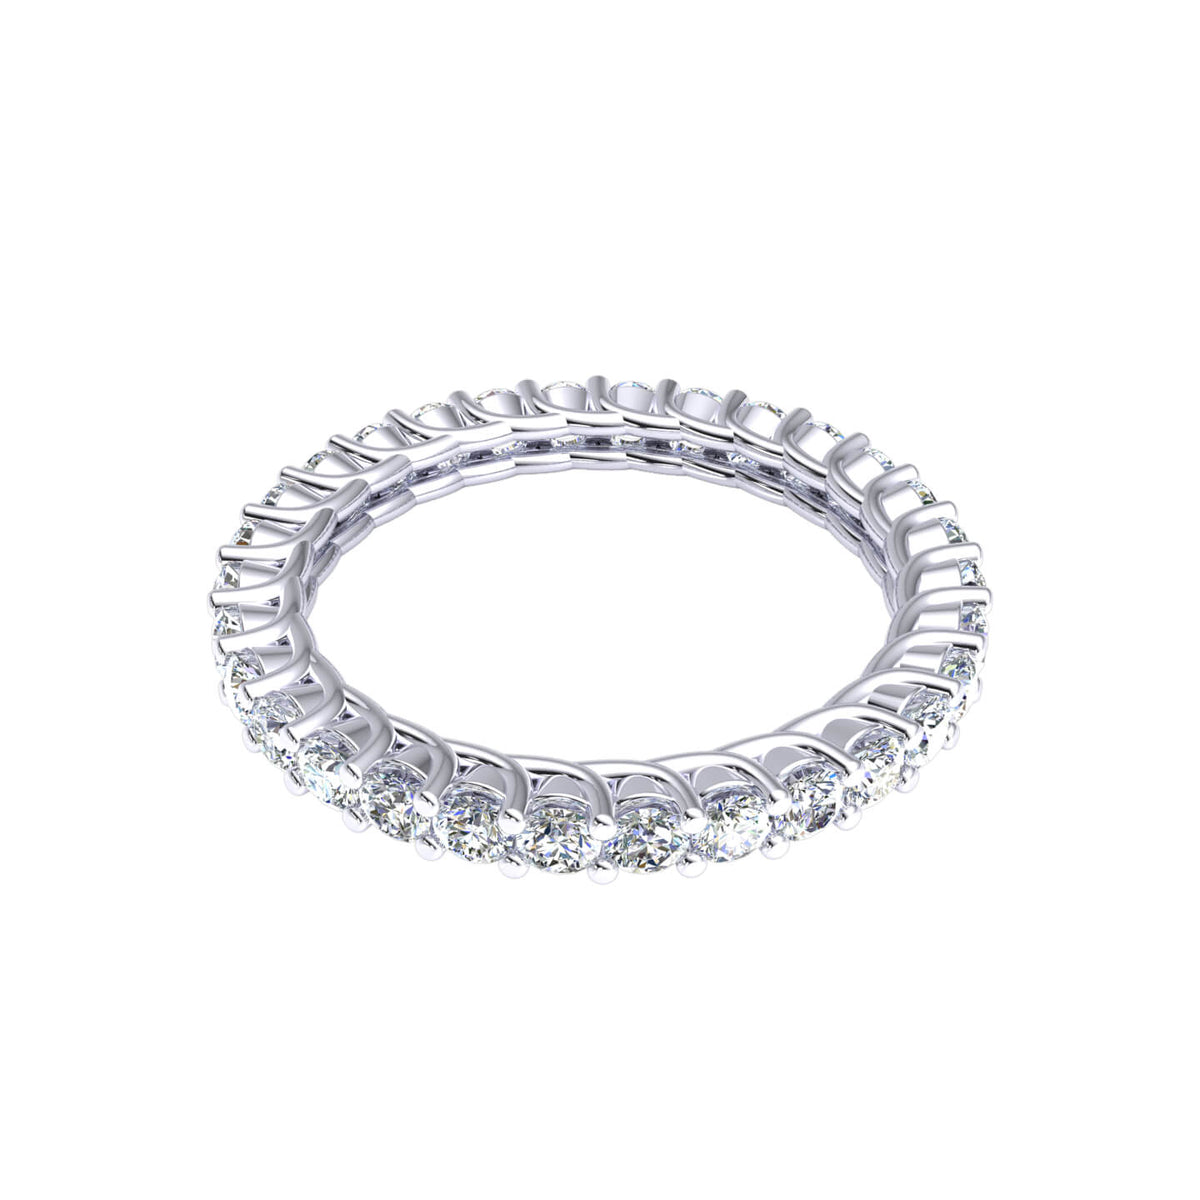 1.40 Ct Bridal Eternity Women's U-Prong Round GH I1-I2 Diamond Wedding Band 925 Silver